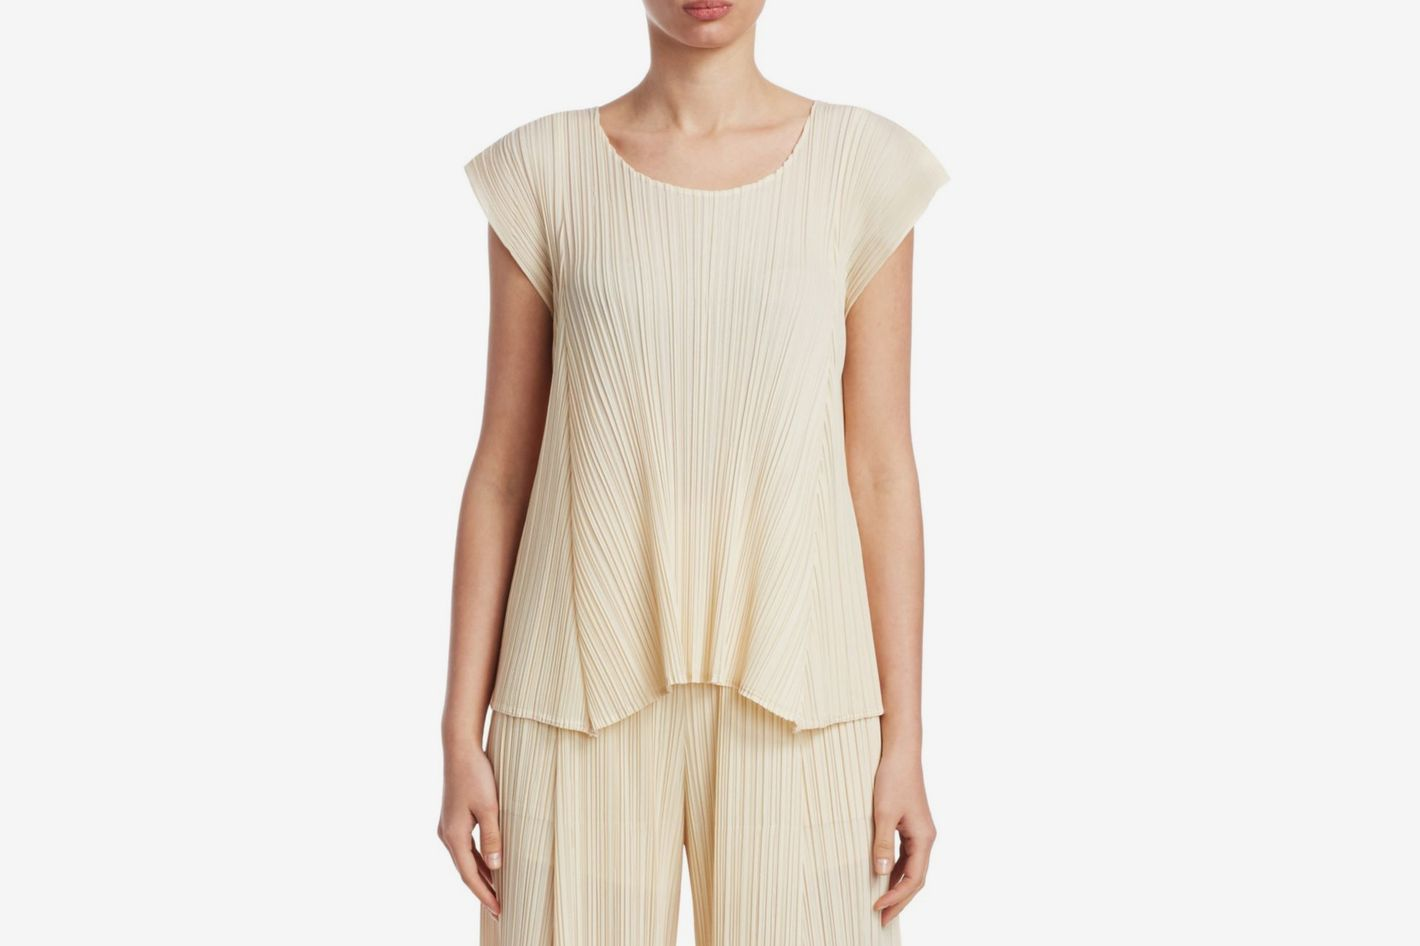 0492113908a Pleats Please Issey Miyake Multi Textured Top